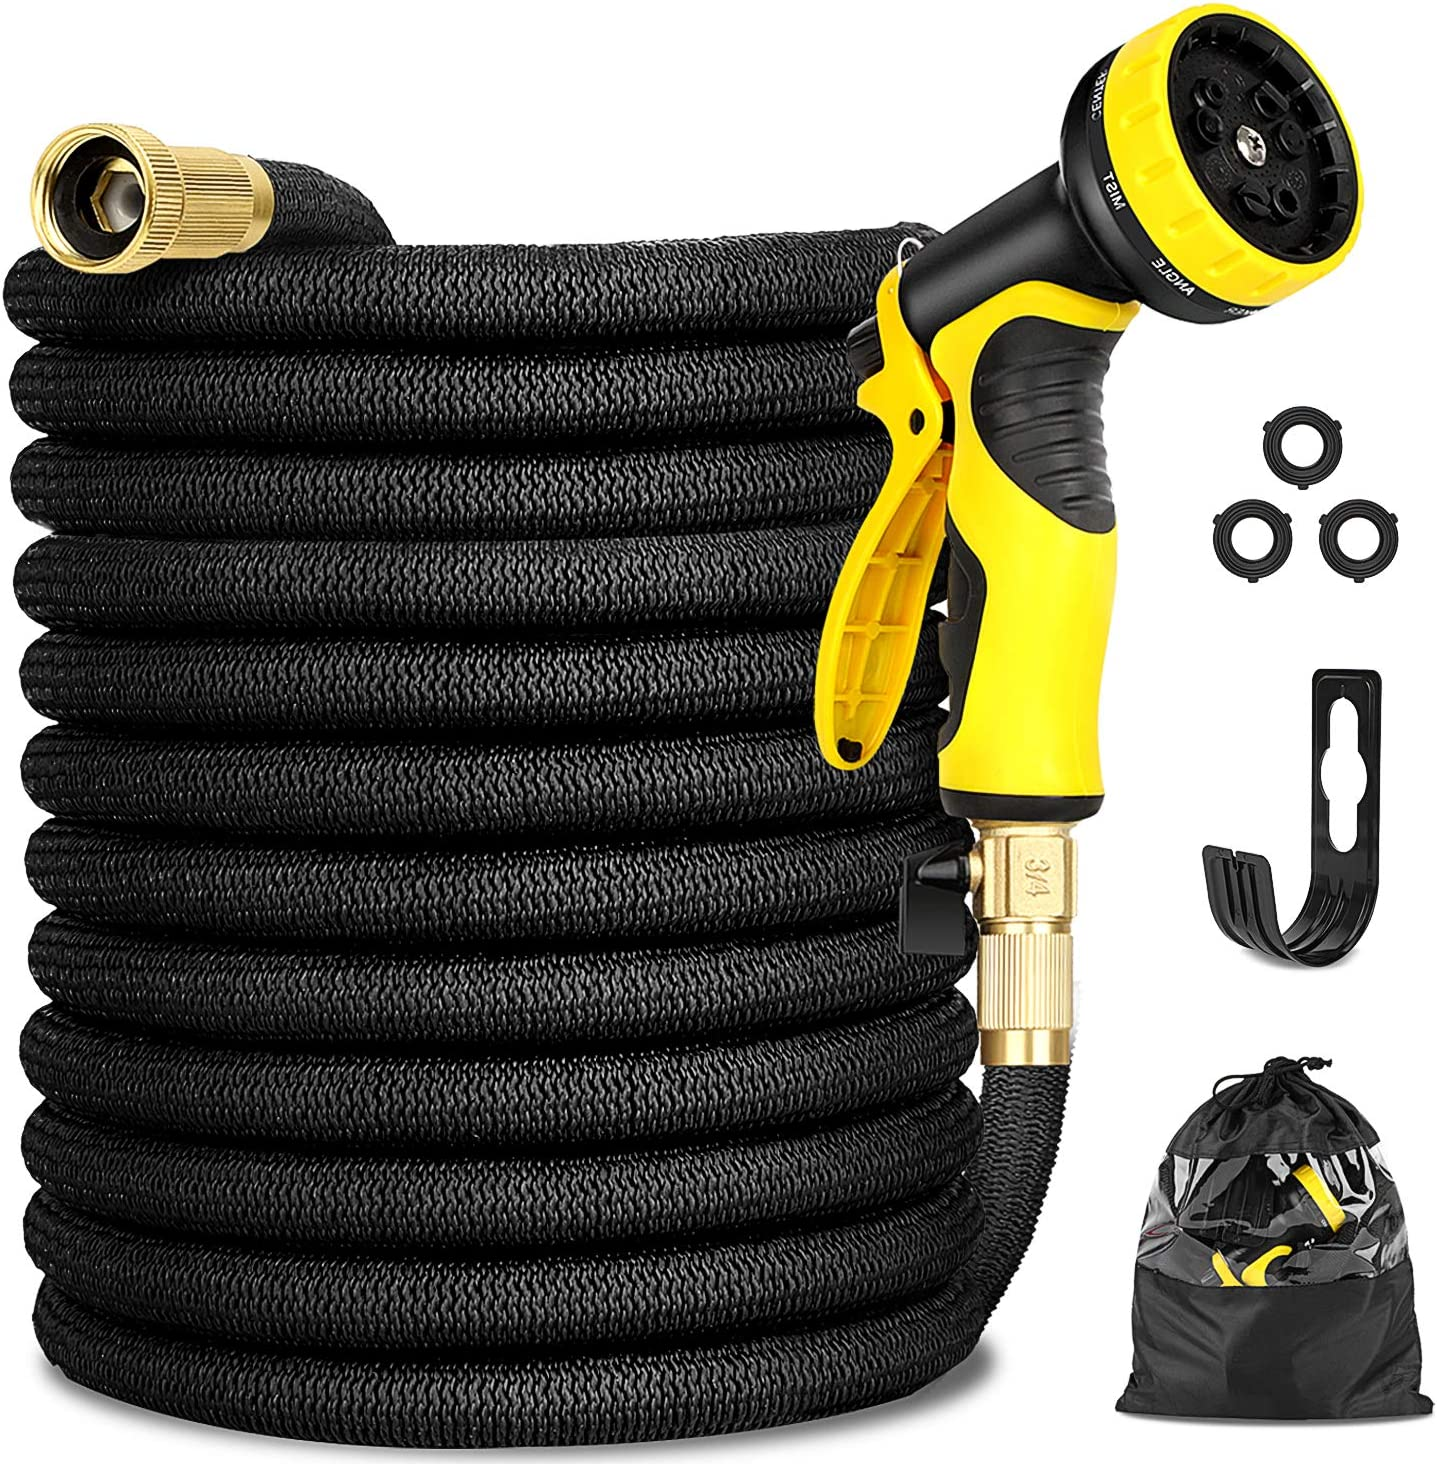 "Garden Hose Expandable 100FT, Flexible Water Hose with Powerful Nozzle Spray, Car Wash Hose with Good Pressure, Expanding hose with 3/4"" Brass Connector, Hose with Metal 9 Function Spray NozzleStorage"